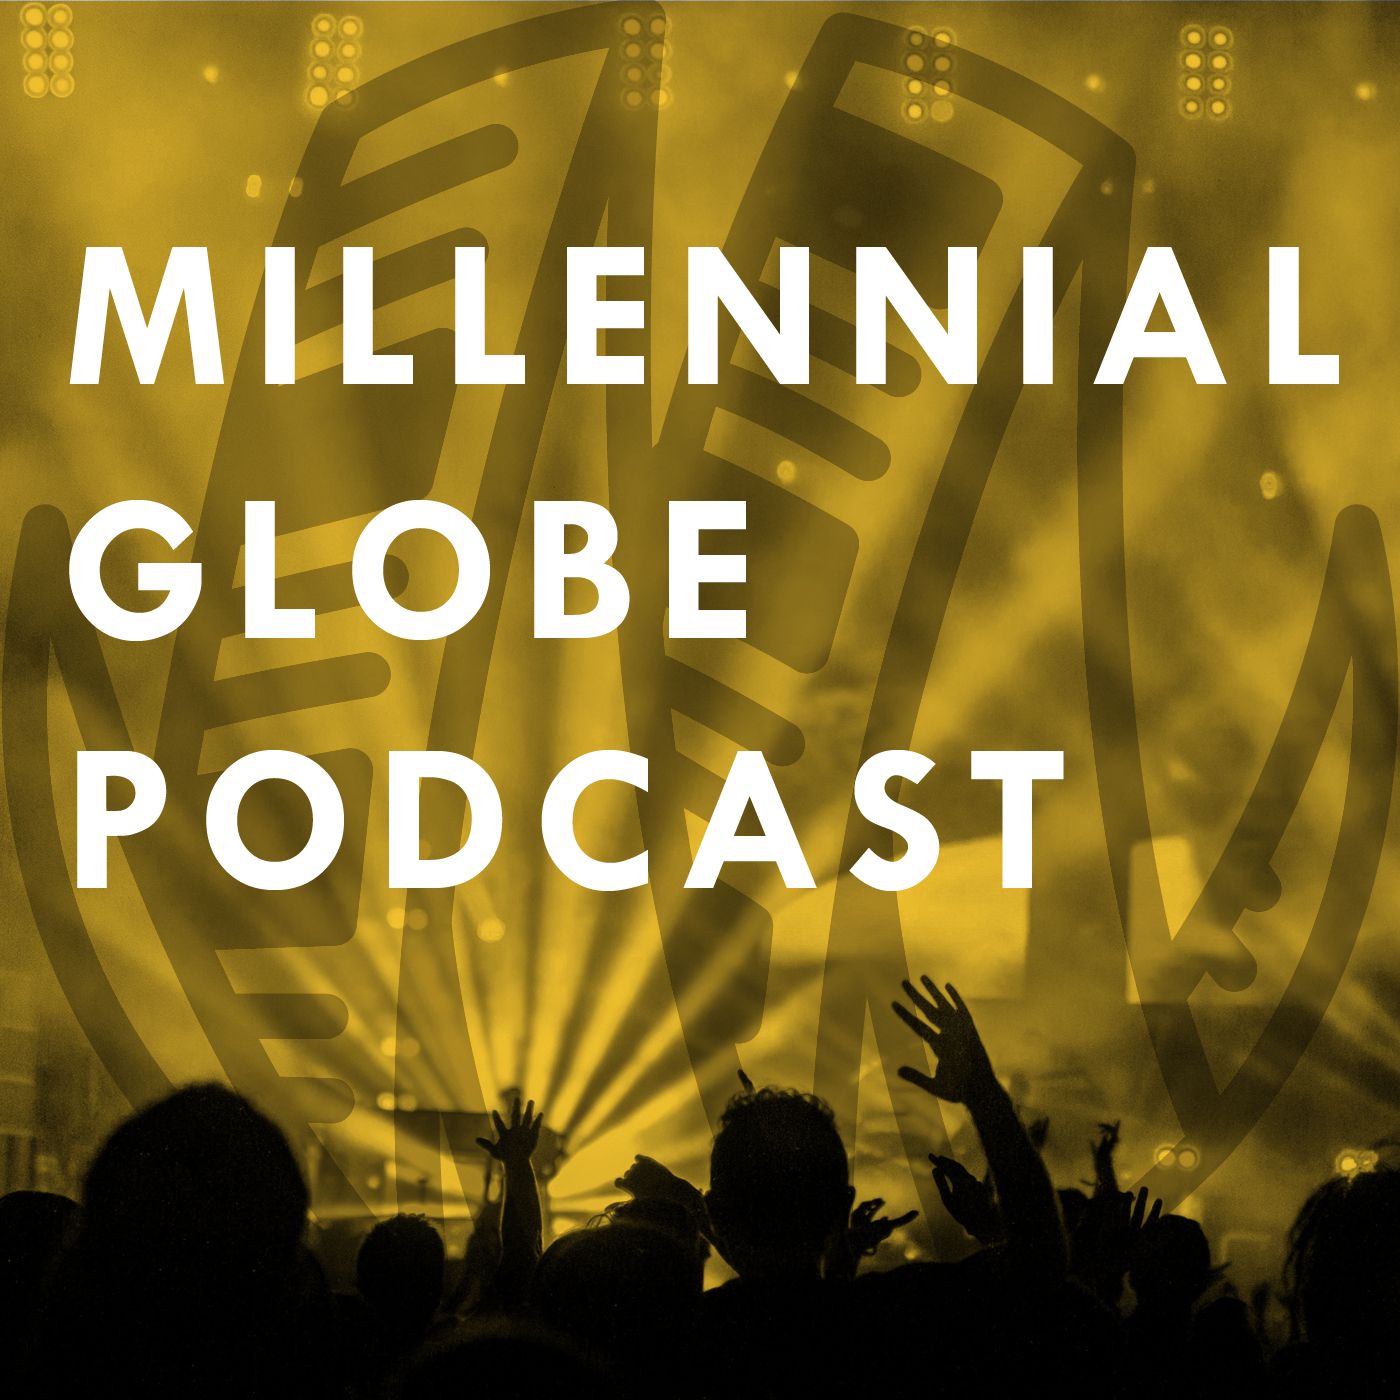 The Podcast - MILLENNIAL GLOBE